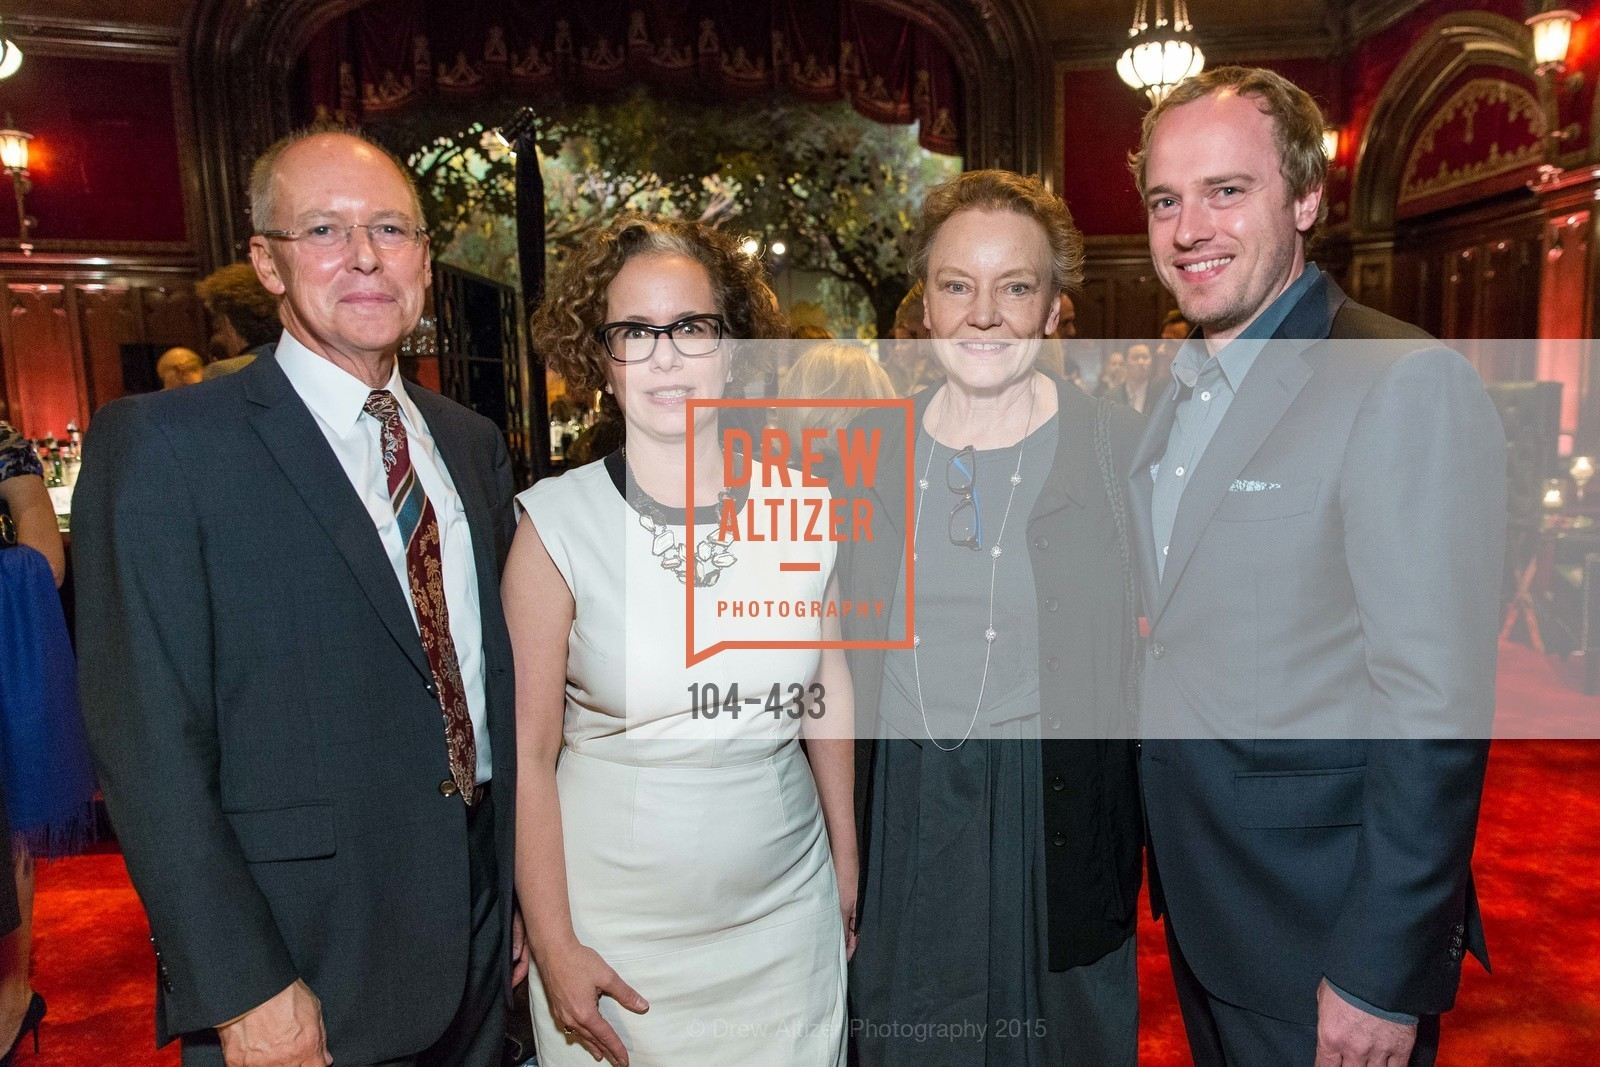 Charles Desmarais, Rachel Schreiber, Dee Hoover, Hesse McGraw, SFMOMA Contemporary Vision Award, Regency Ballroom. 1300 Van Ness, November 3rd, 2015,Drew Altizer, Drew Altizer Photography, full-service agency, private events, San Francisco photographer, photographer california